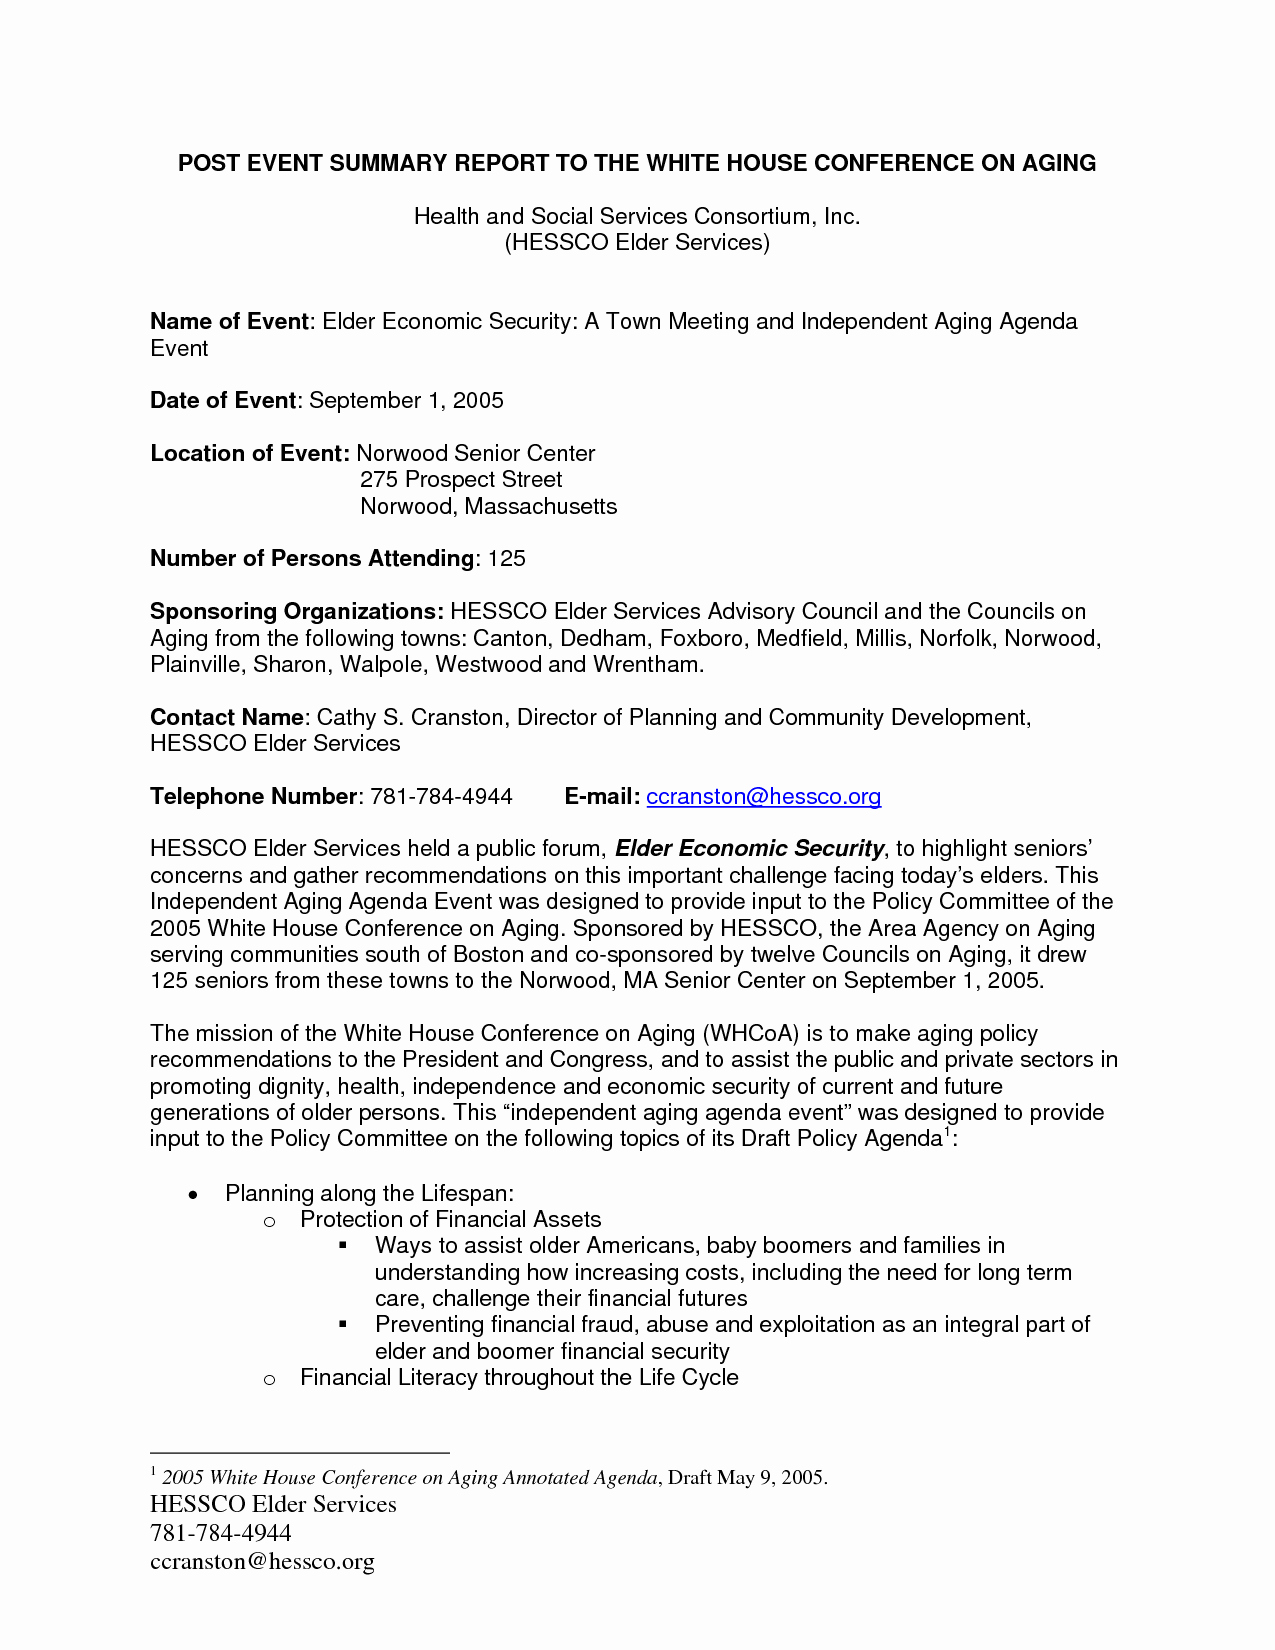 Post event Report Template Awesome Best S Of Post event Report Sample Sample event